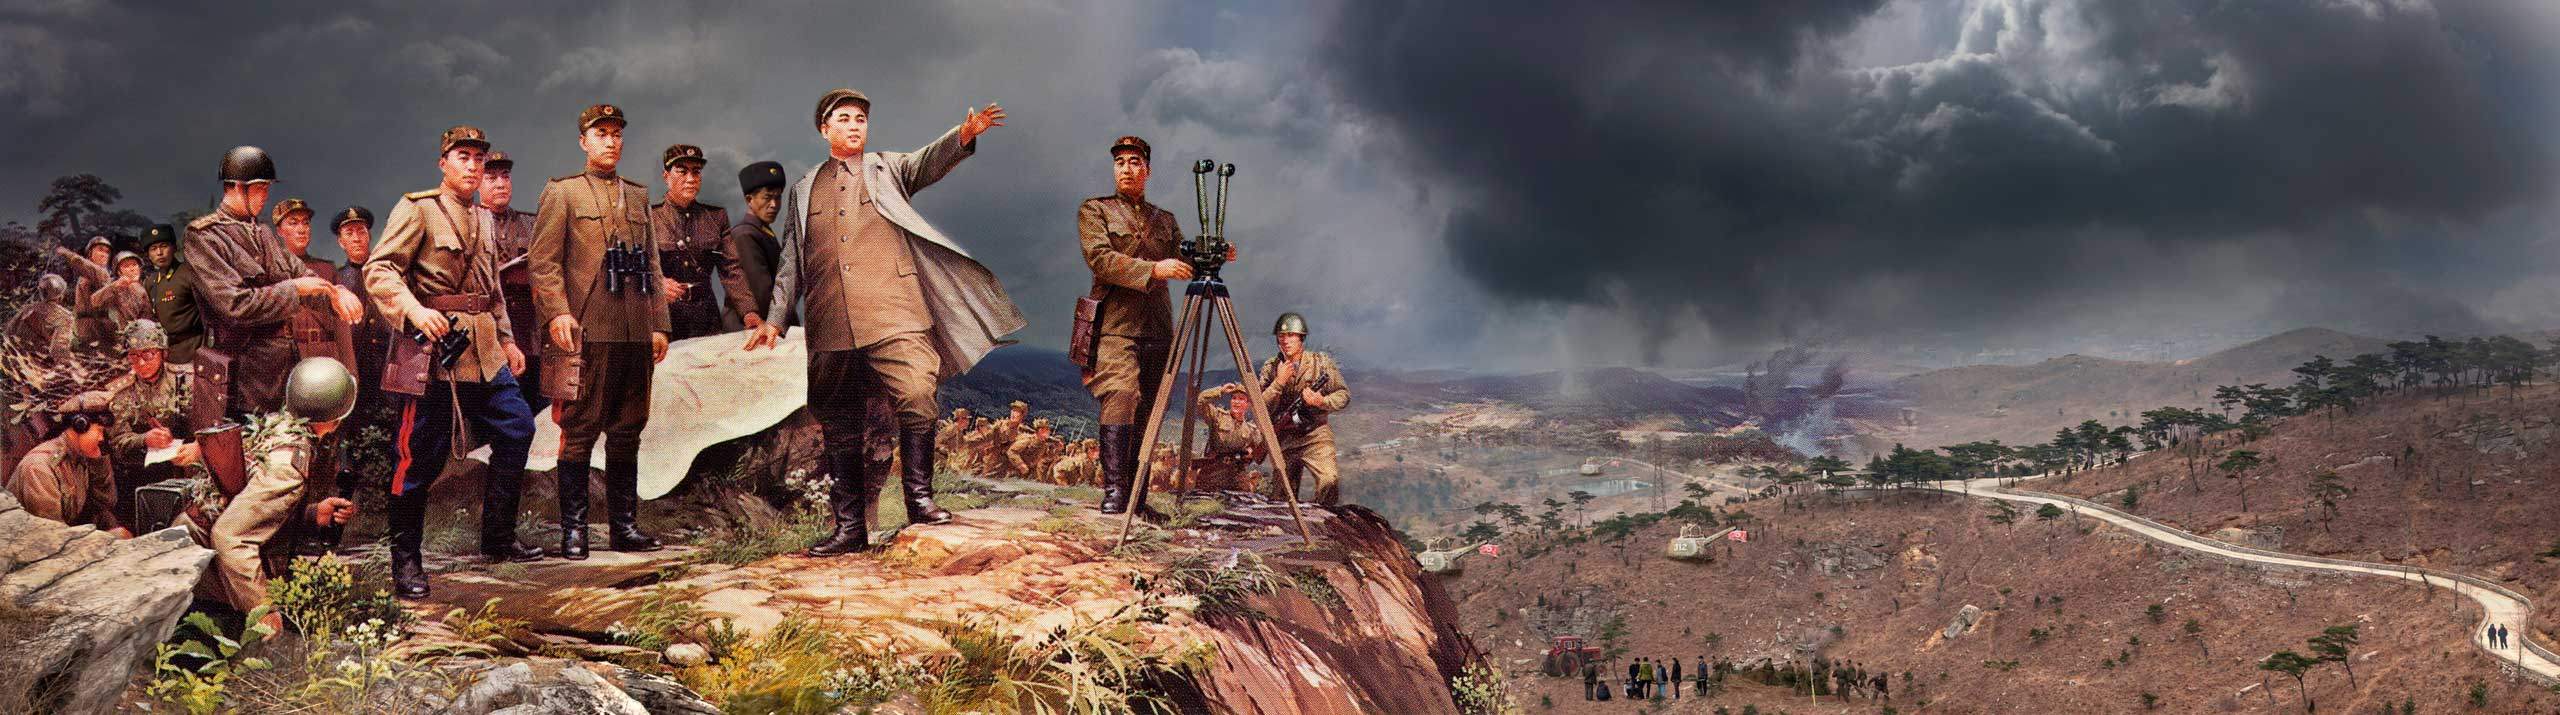 Leading the Troup. From series North Korea - A Life between Propaganda and Reality.